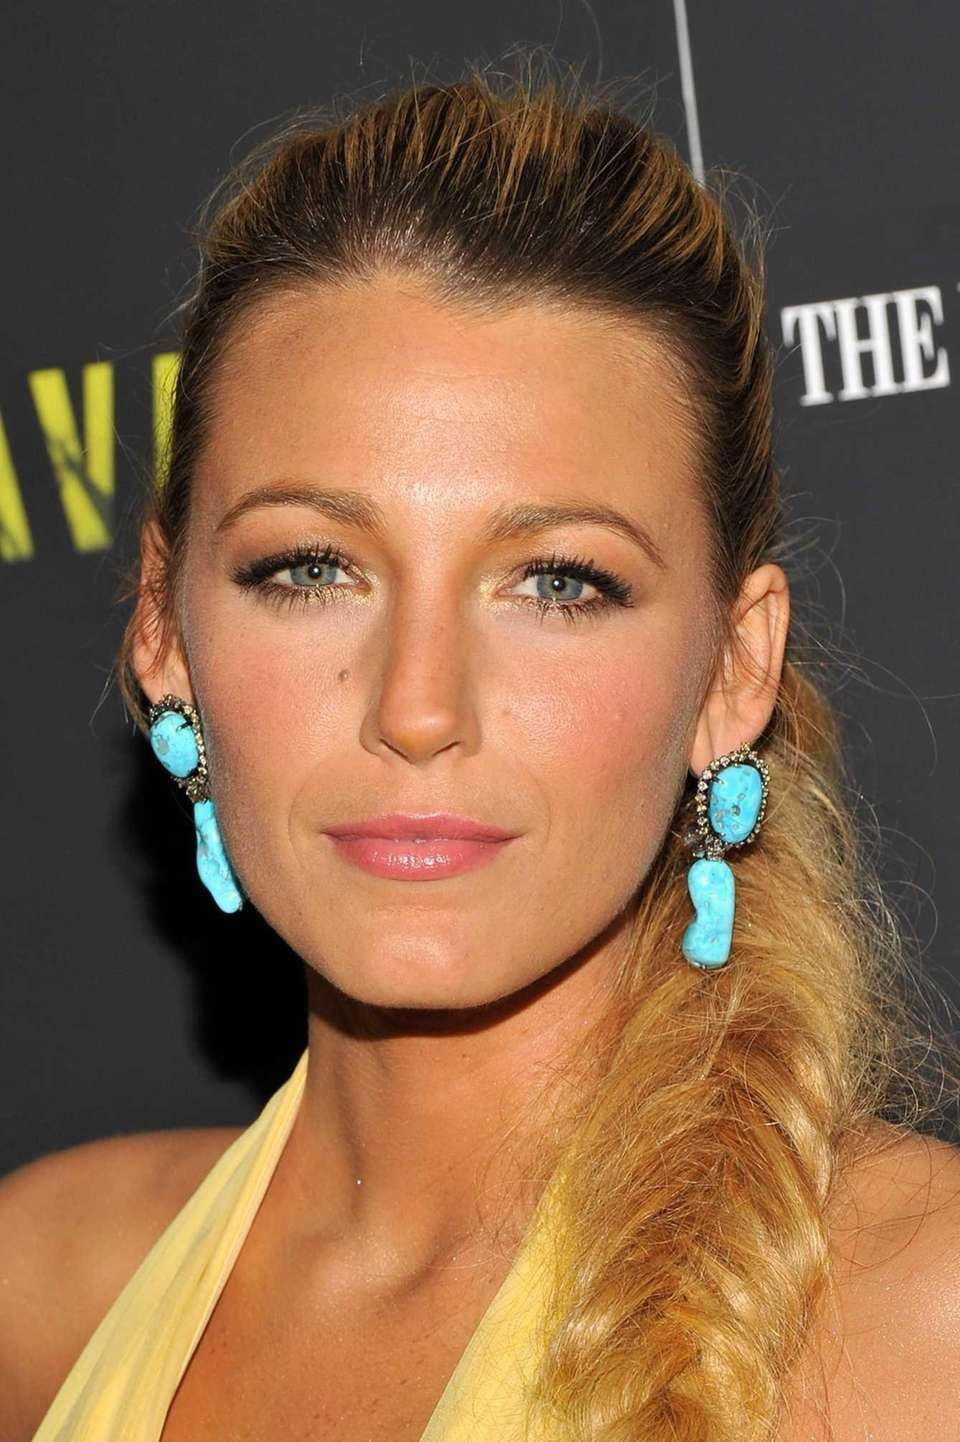 Actress Blake Lively attends the premiere of her